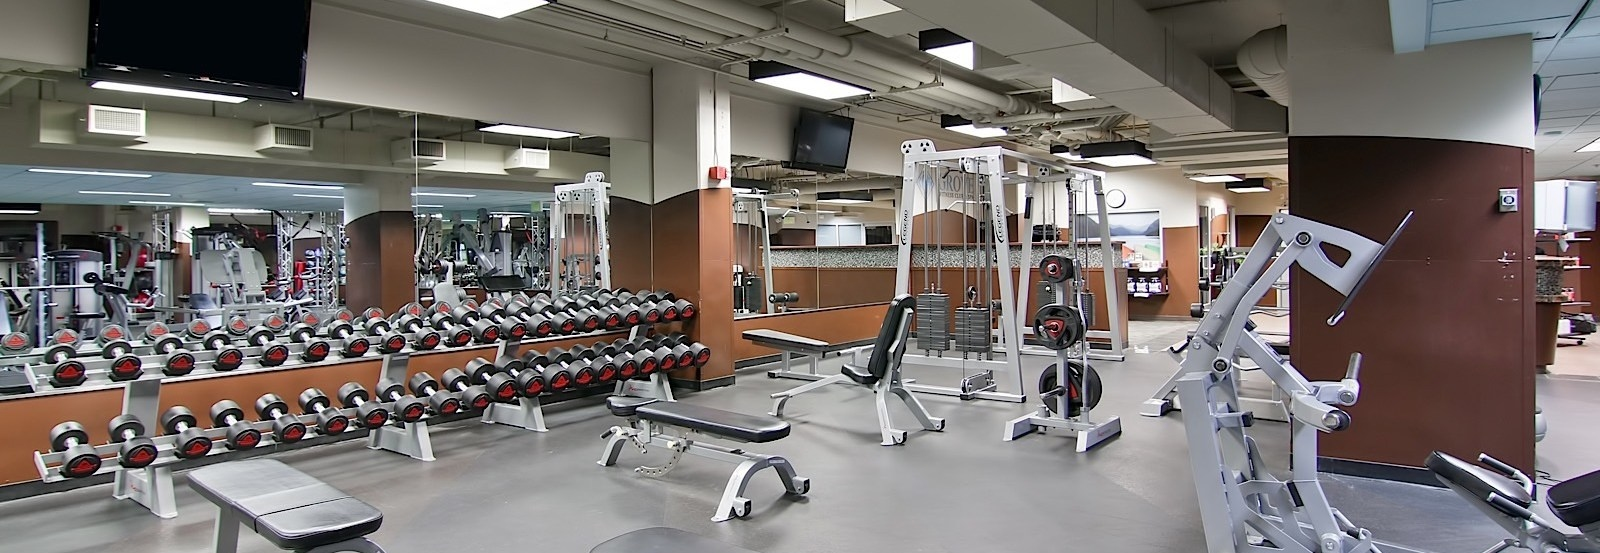 a set of weights and benches in a gym